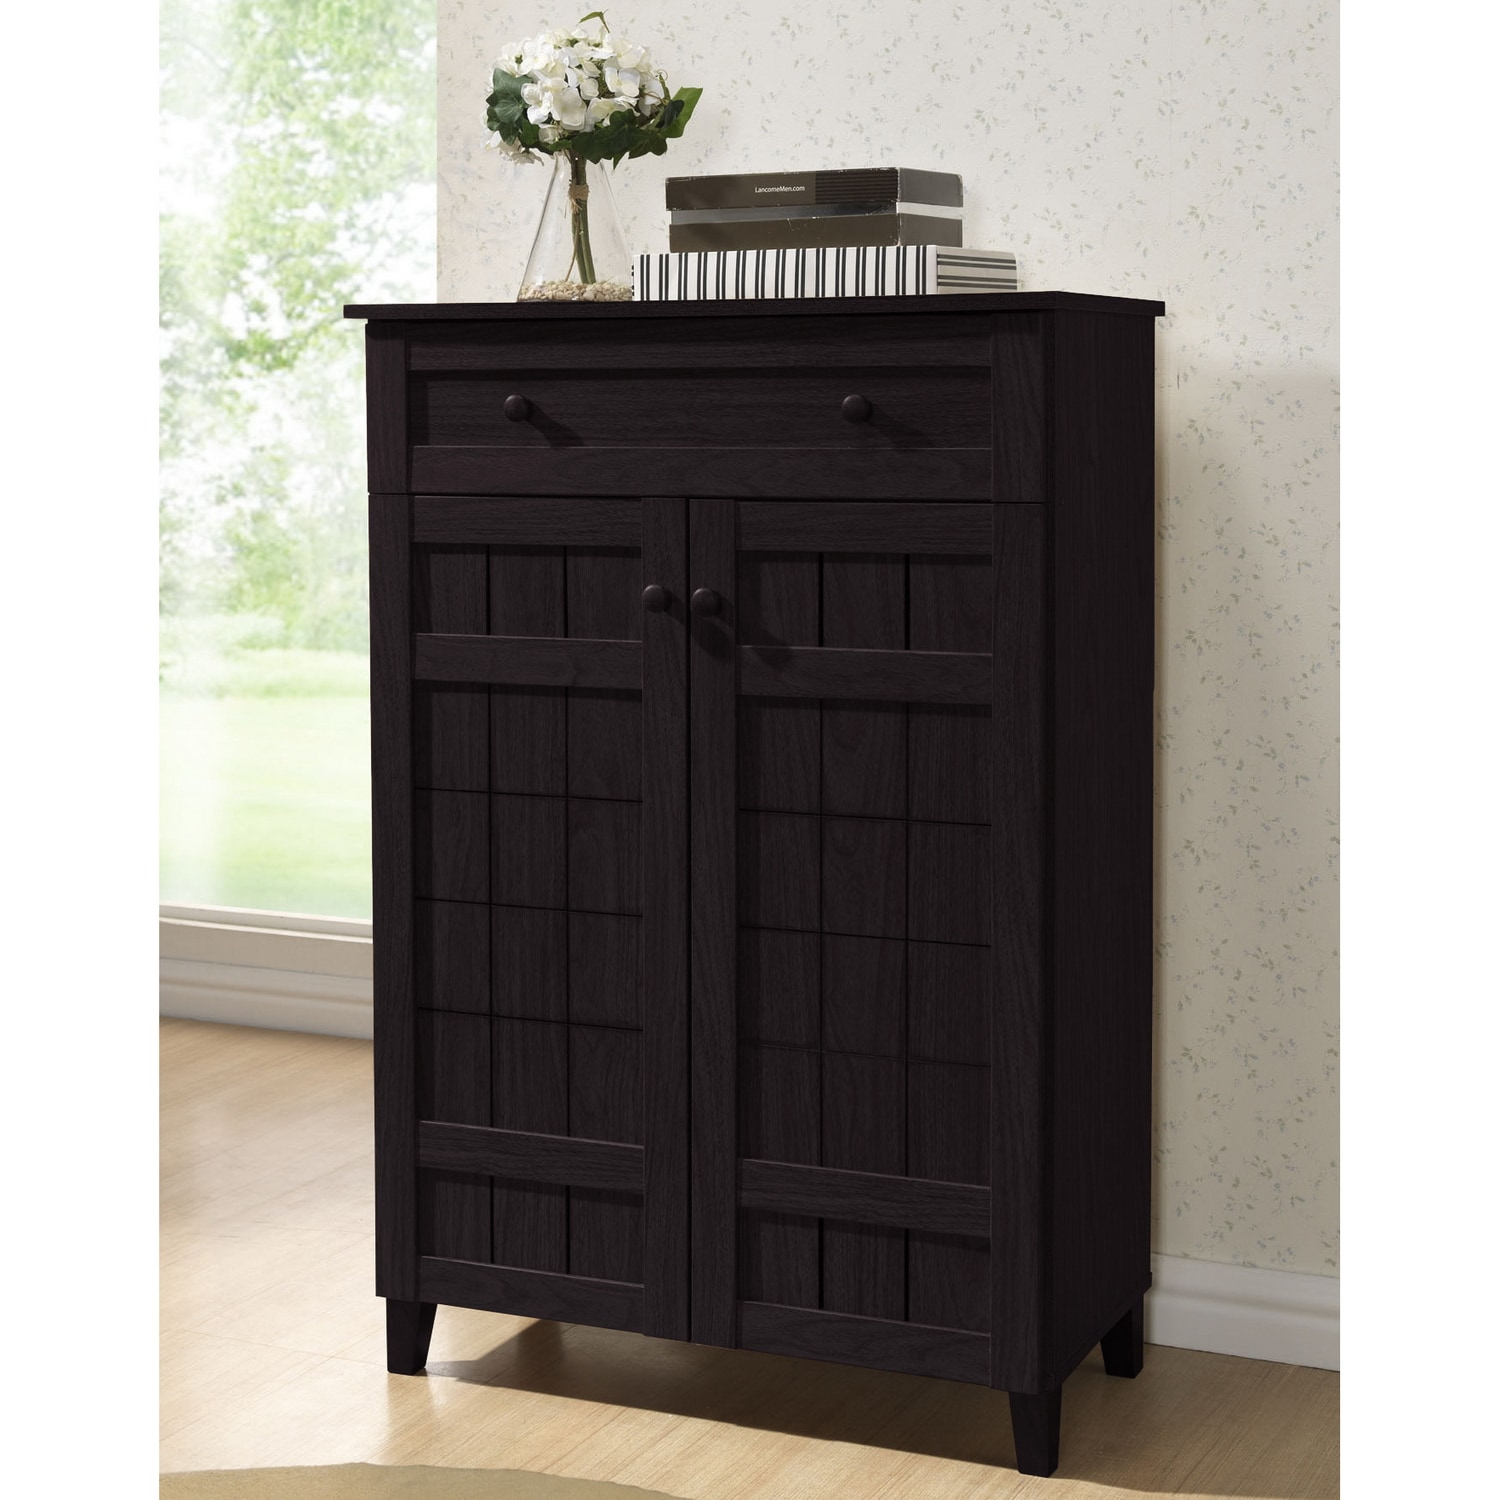 Exceptional Baxton Studio Glidden Dark Brown Wood Shoe Cabinet   Free Shipping Today    Overstock.com   15374461